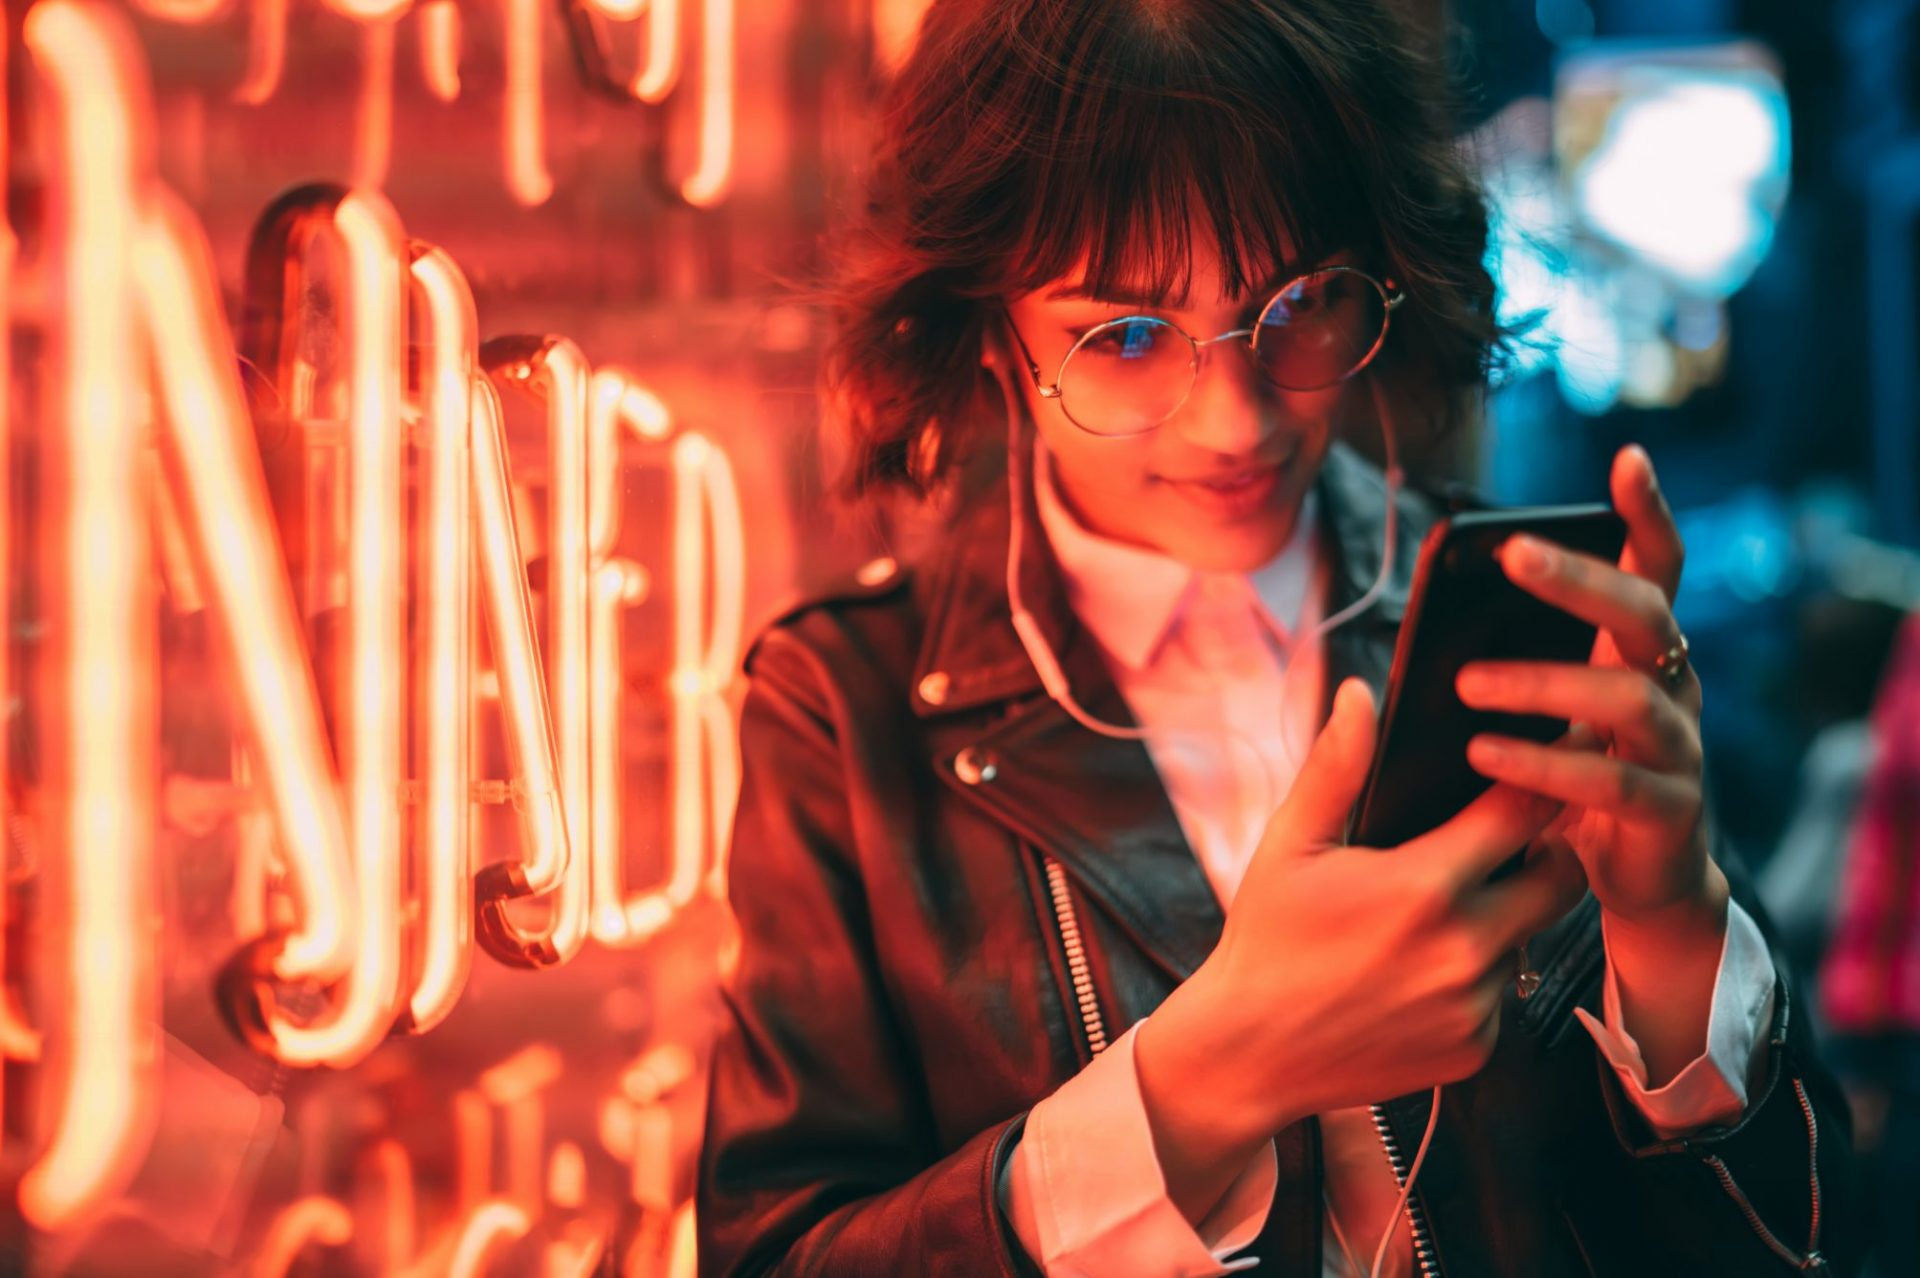 Young woman looking at smartphone next to red neon light